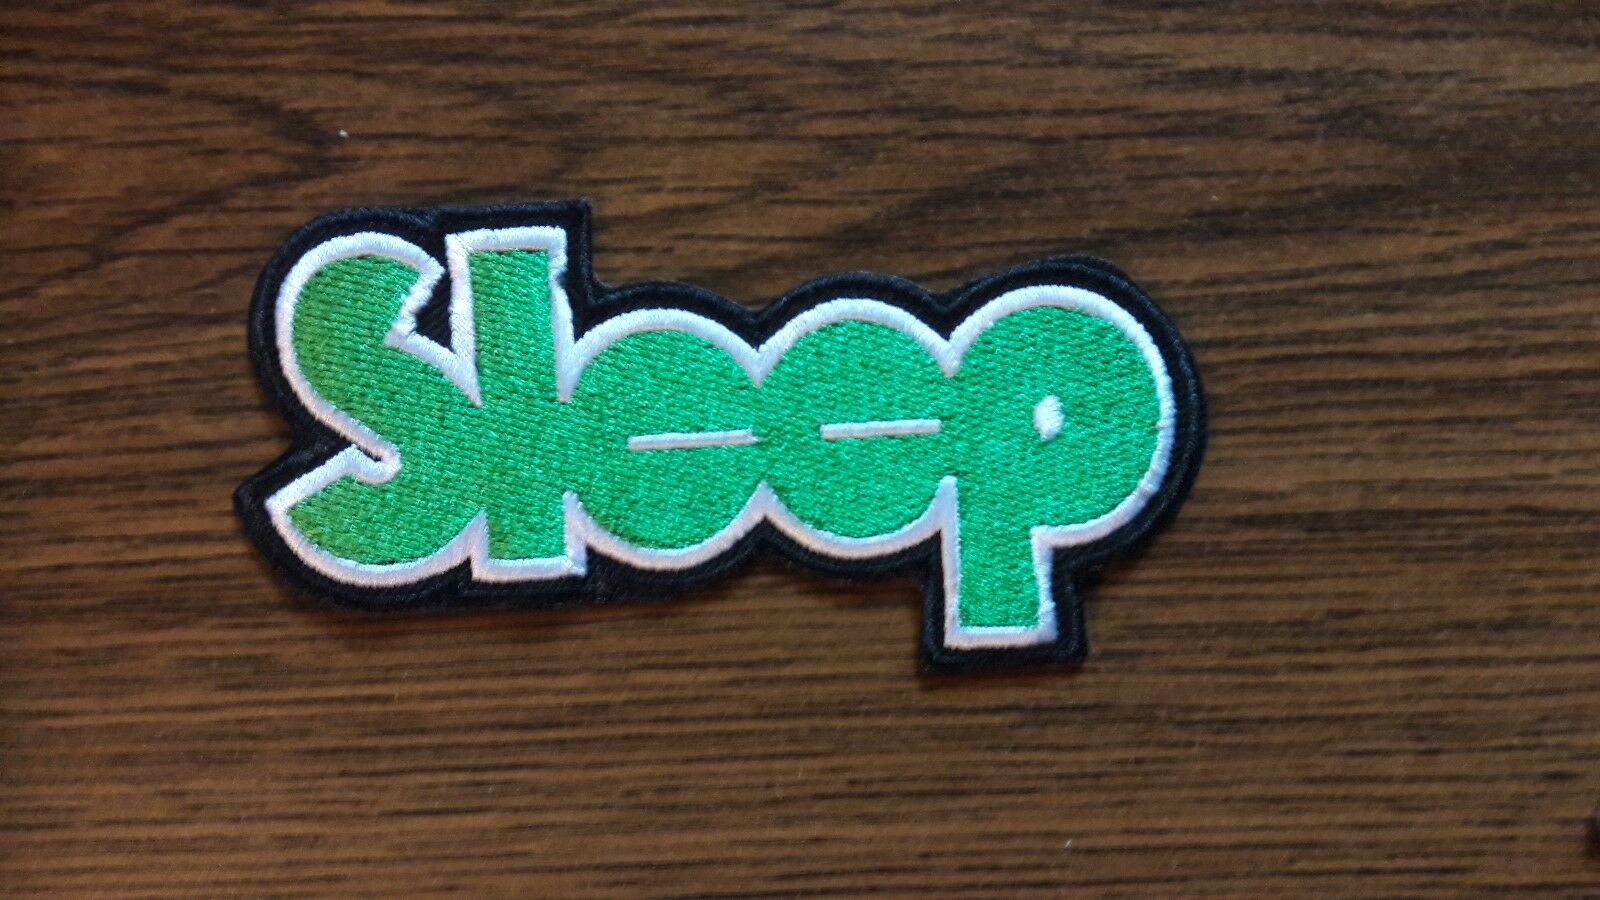 SLEEP,IRON ON GREEN EMBROIDERED PATCH